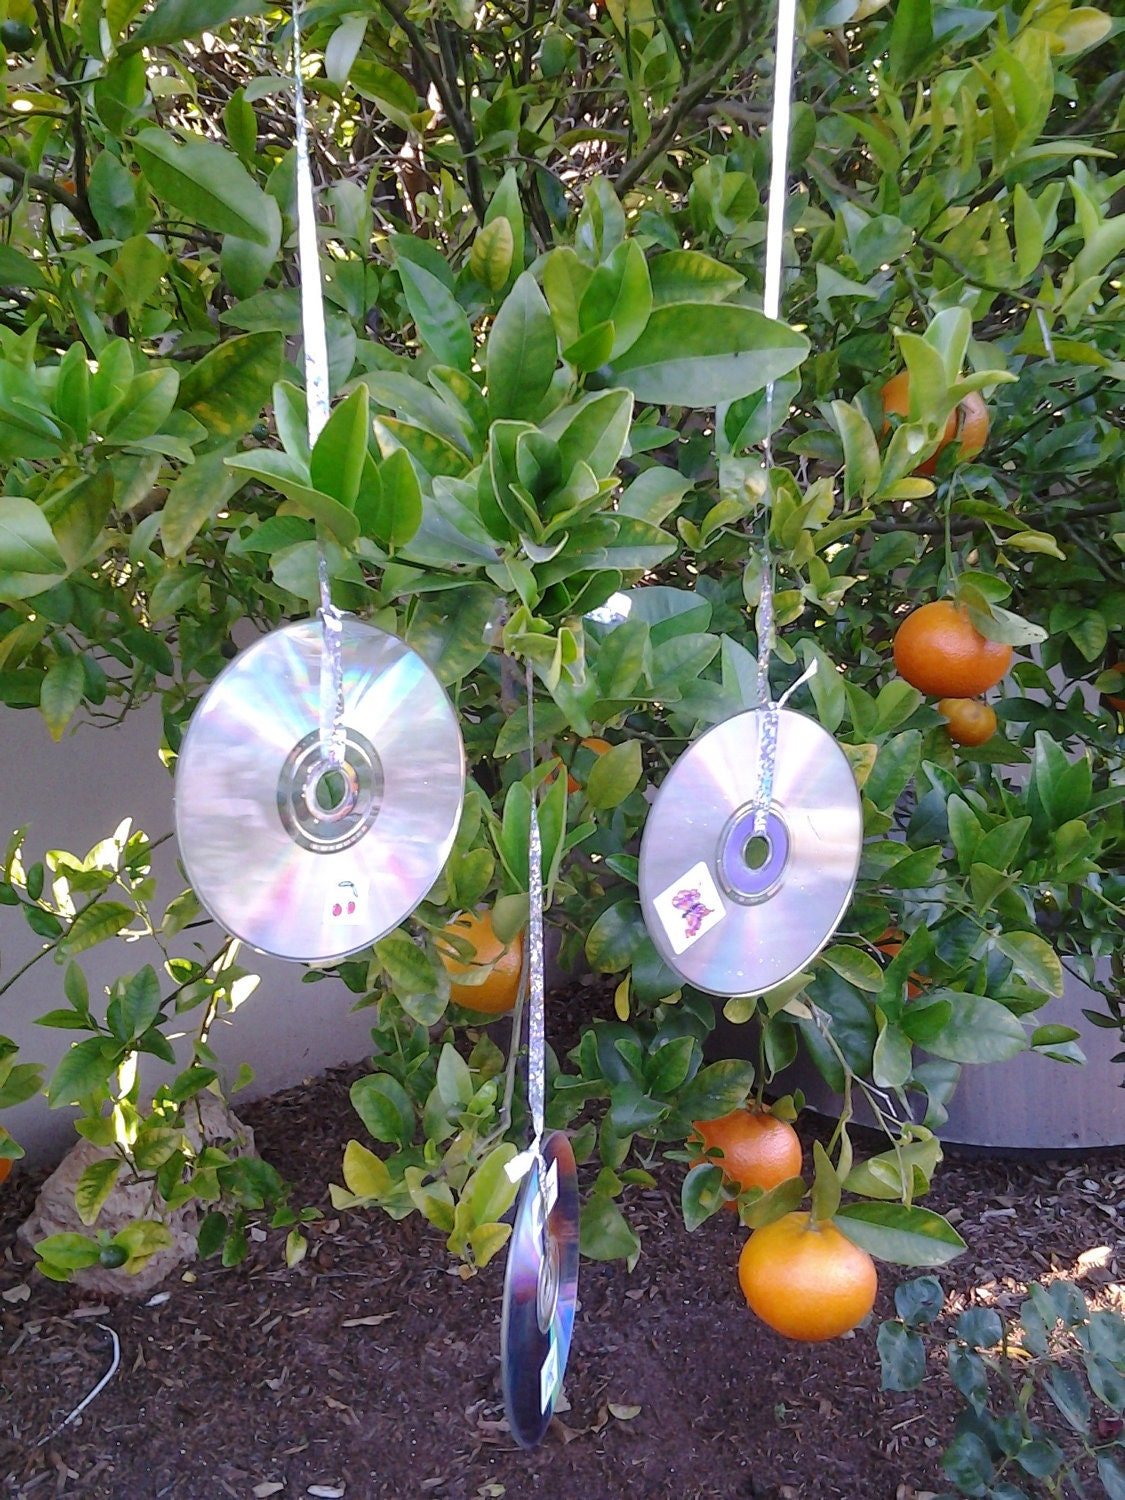 How Can You Make Your Garden More Decorative? - Lessons - Tes Teach